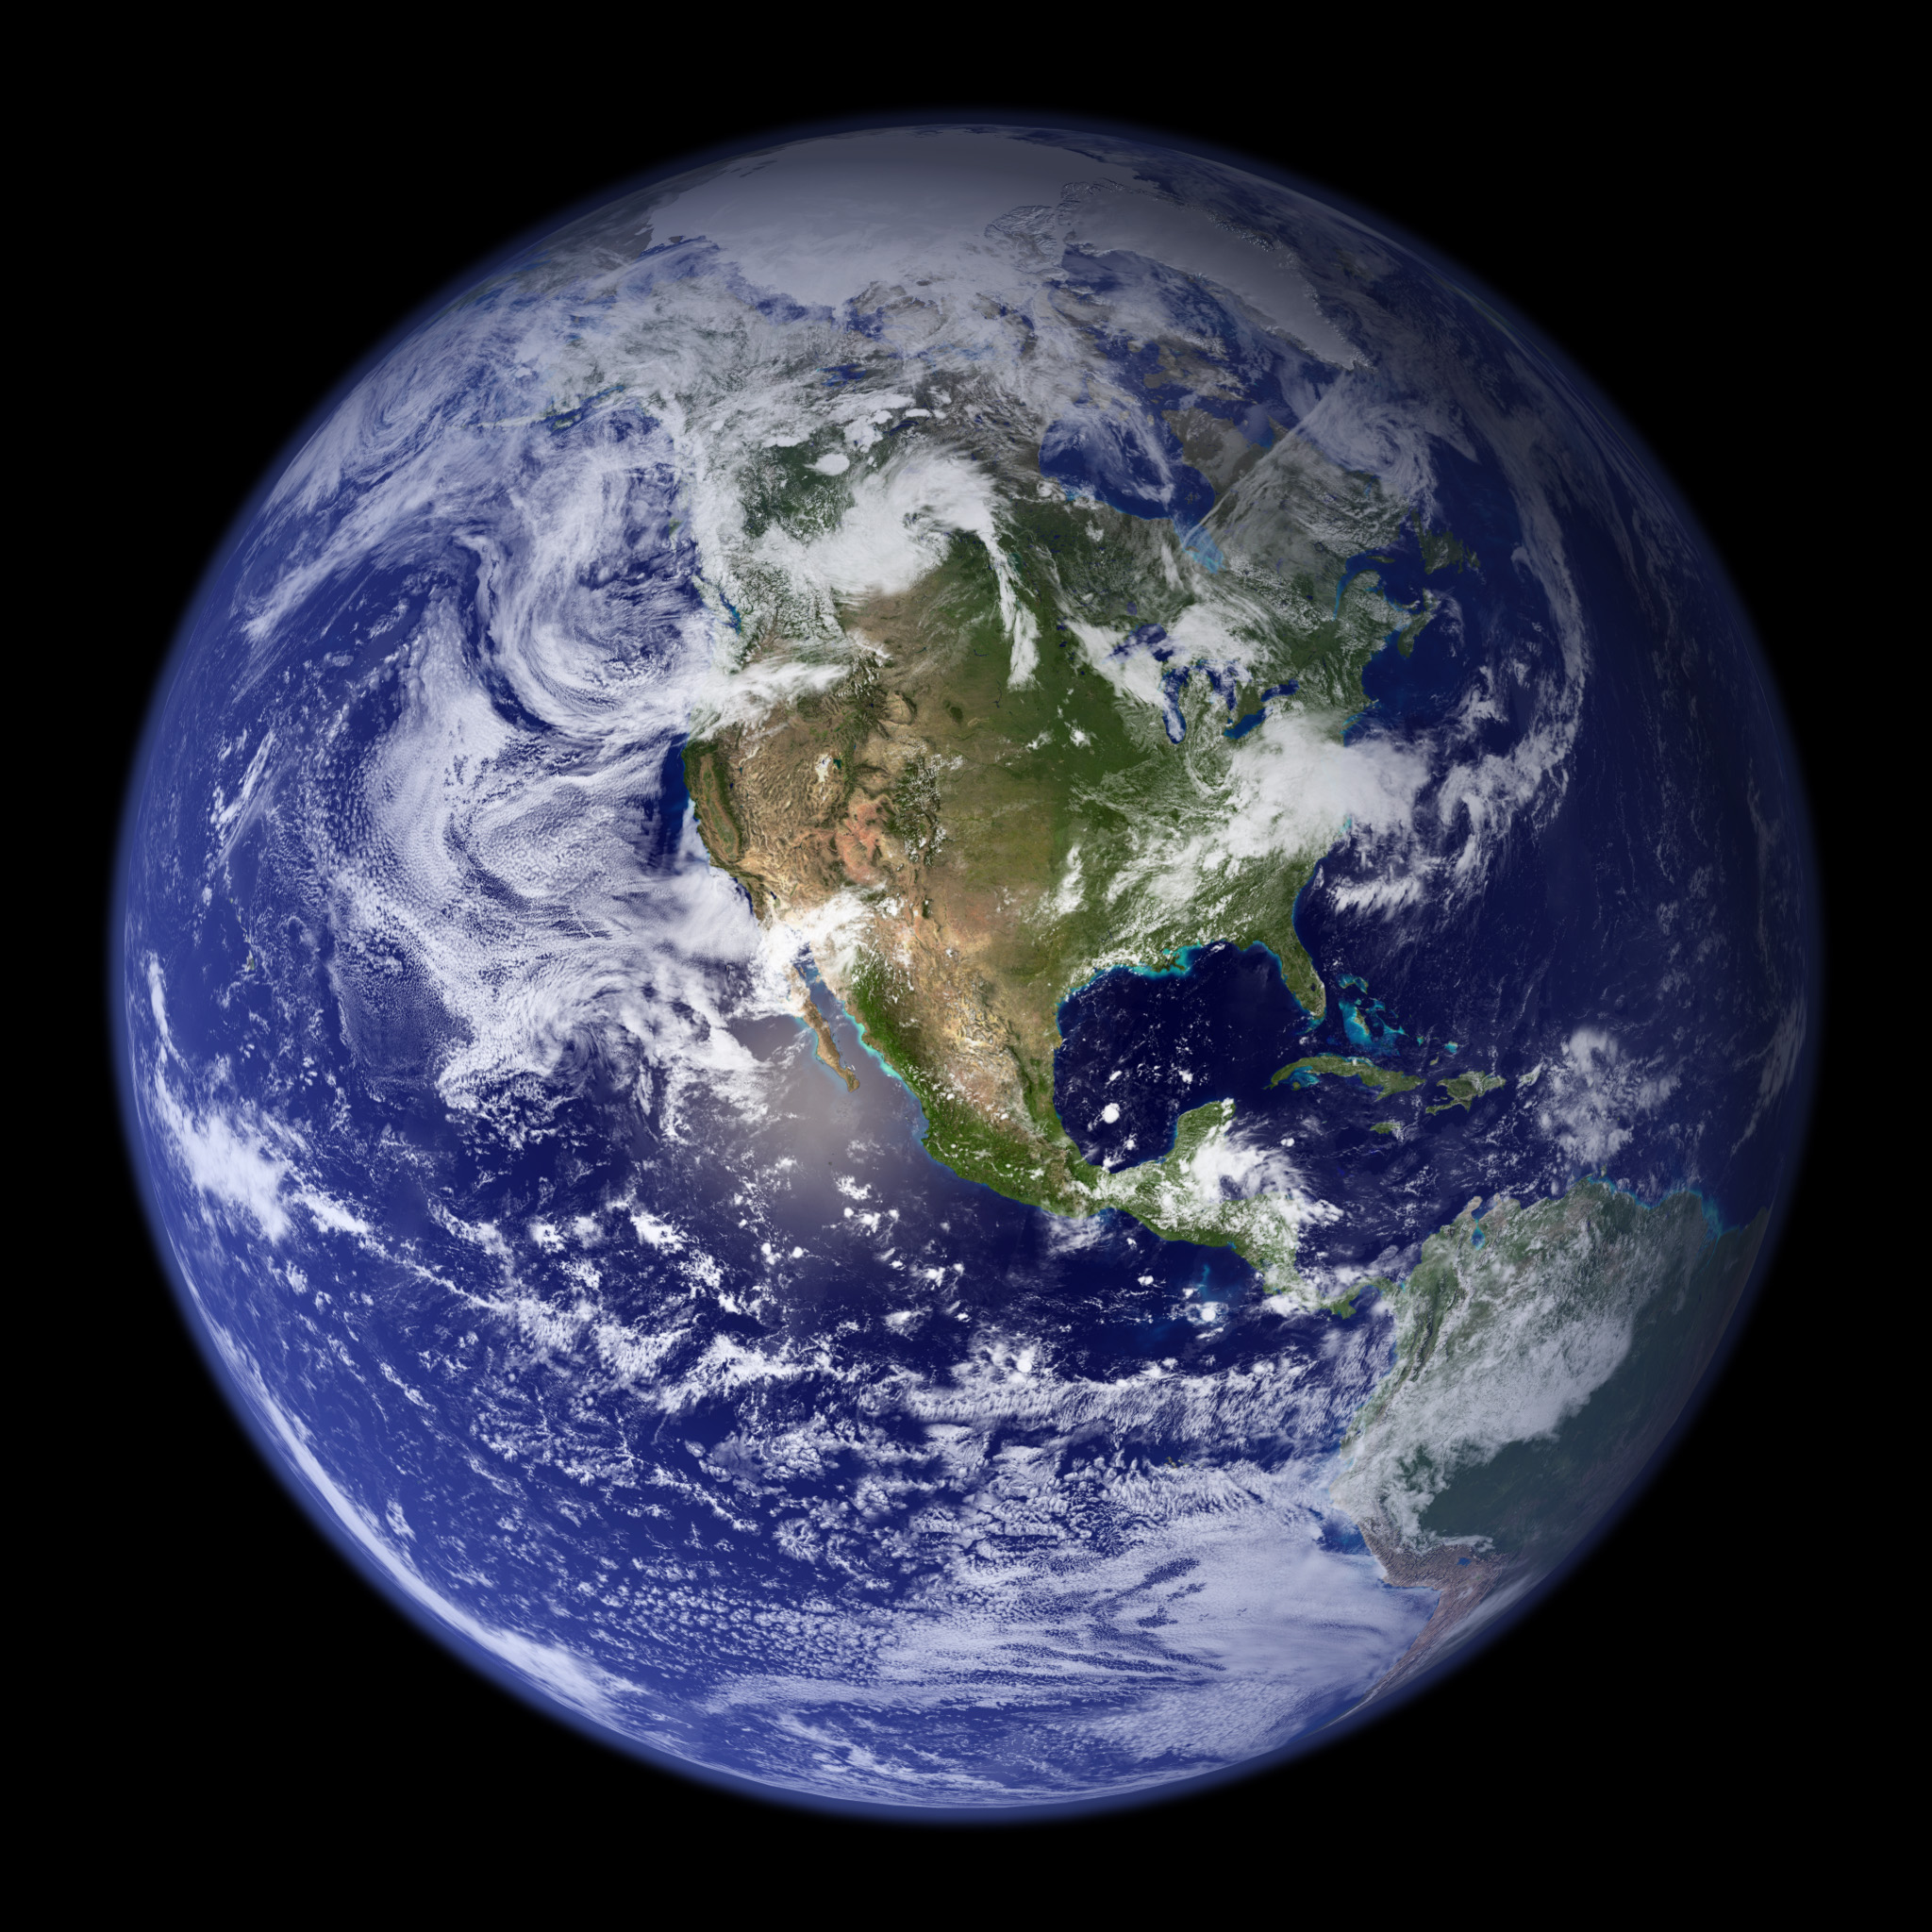 earth full view from satellite